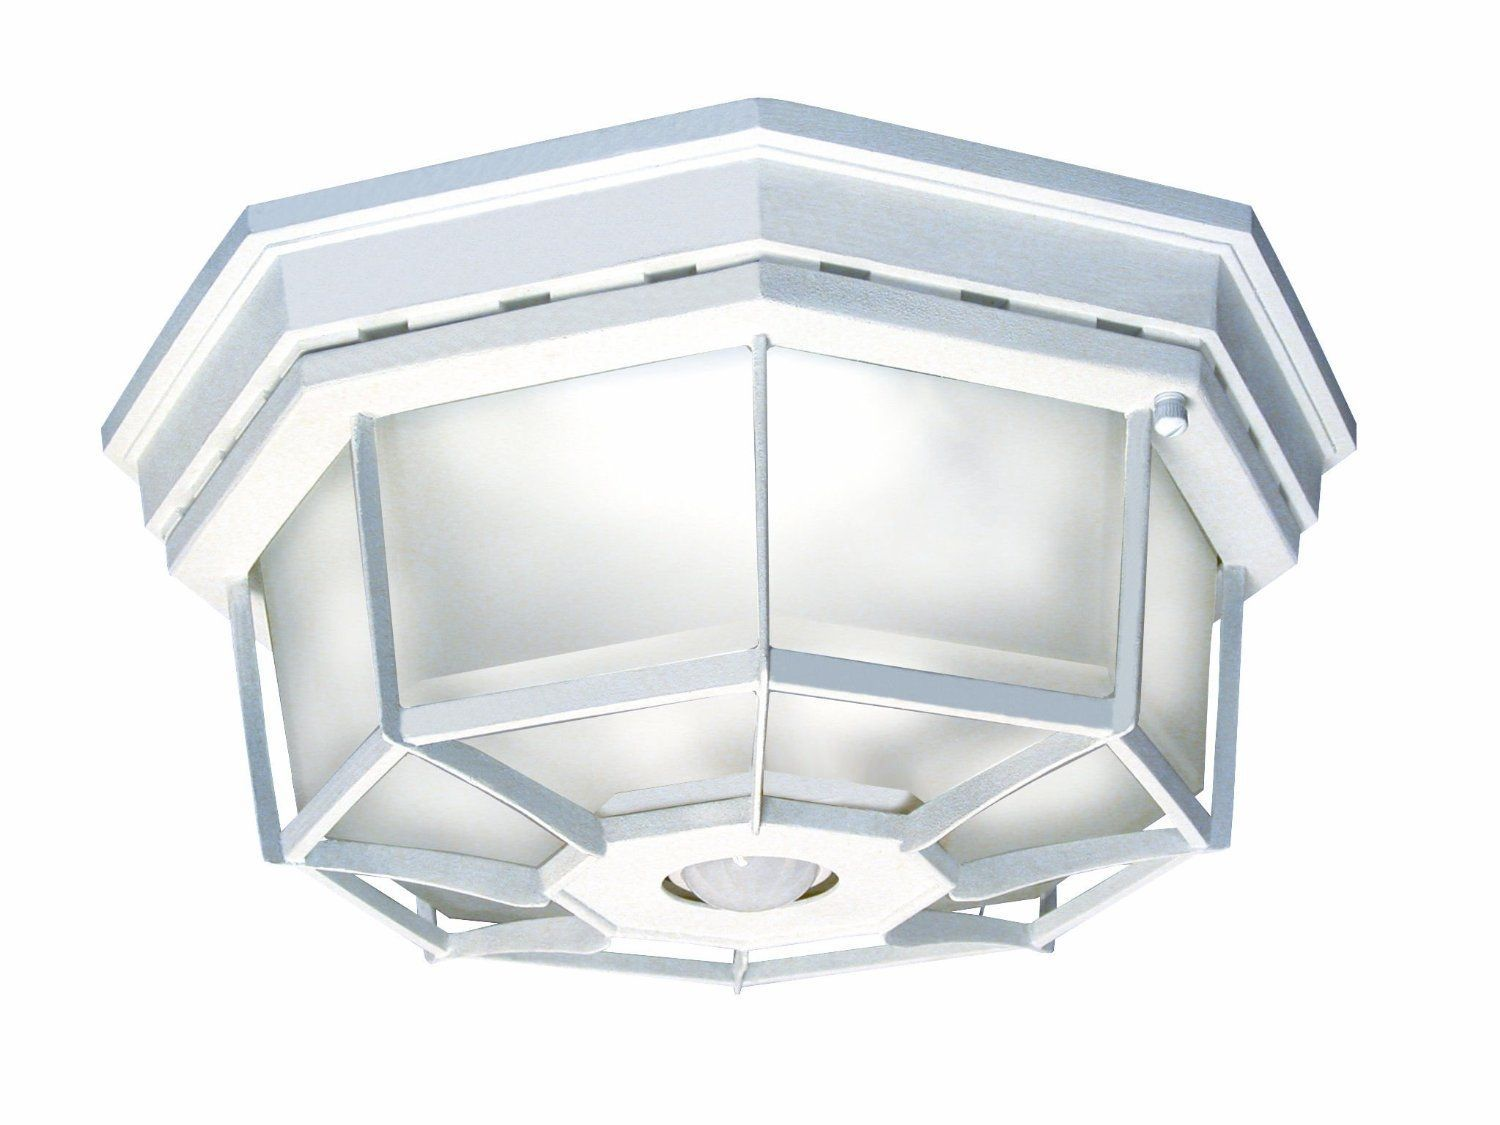 Motion Sensor Light Fixtures Indoor